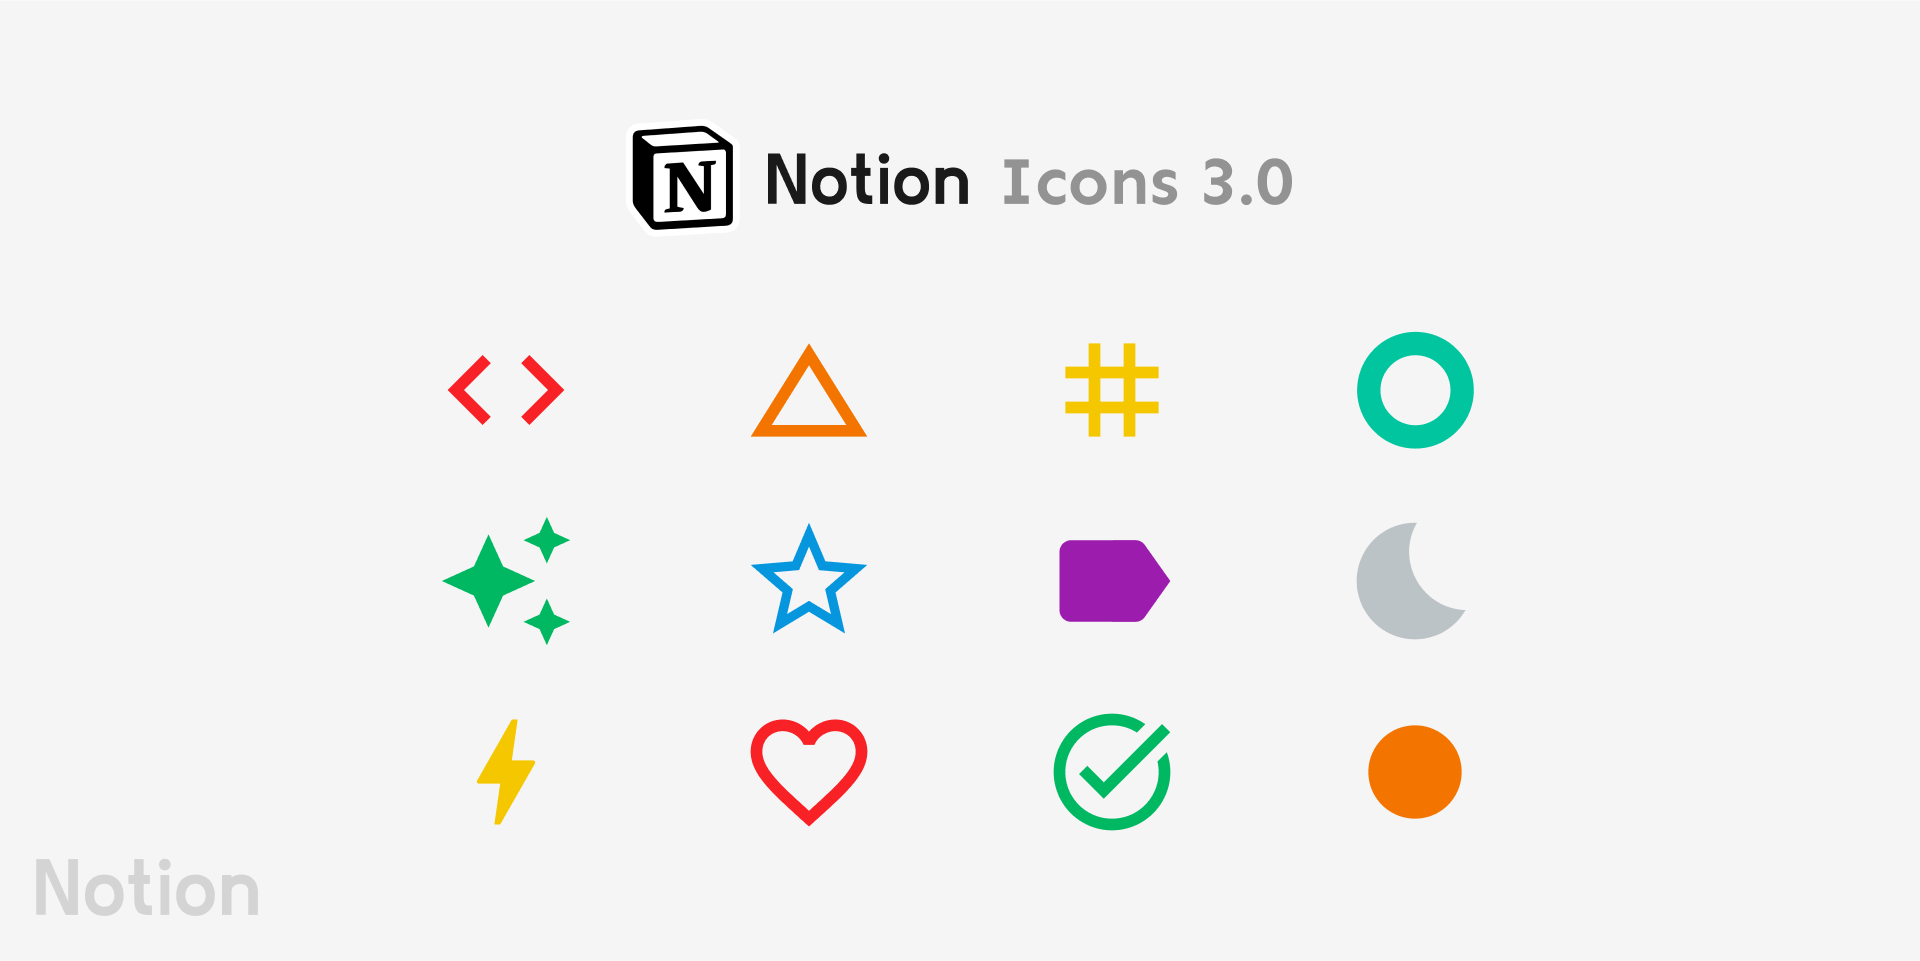 Notion Icons 3.0